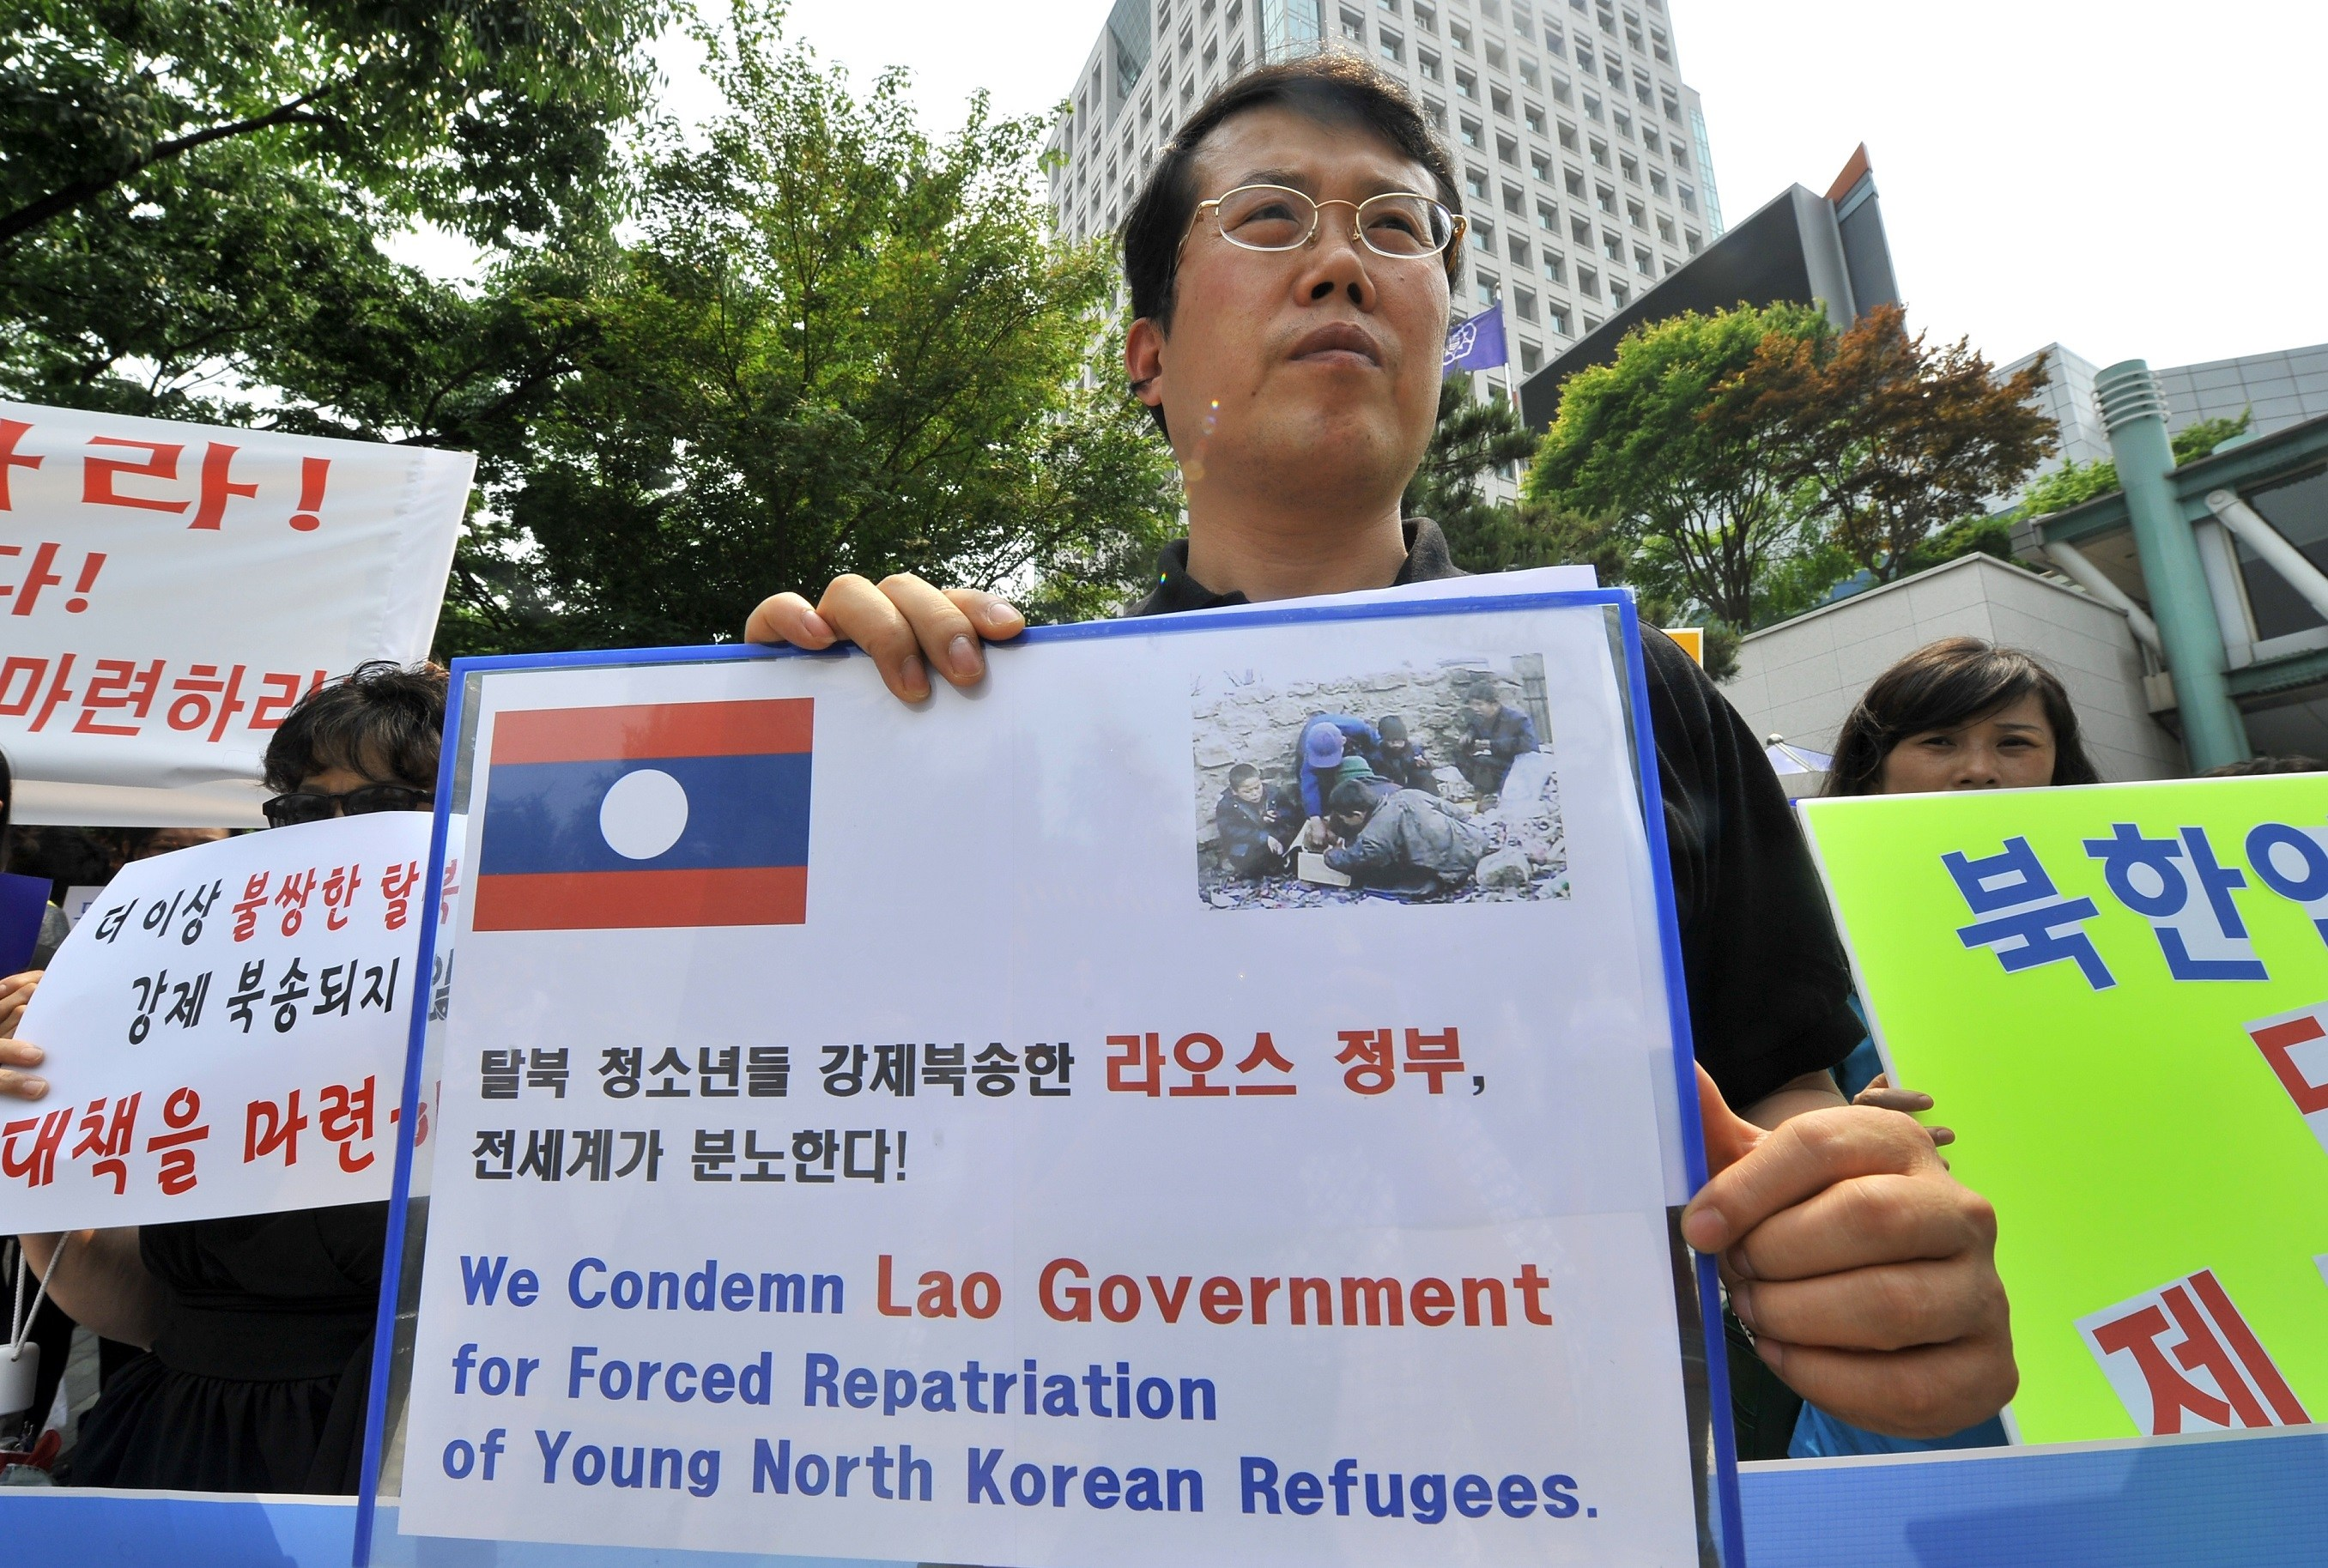 North Korea Defector protesting with sign